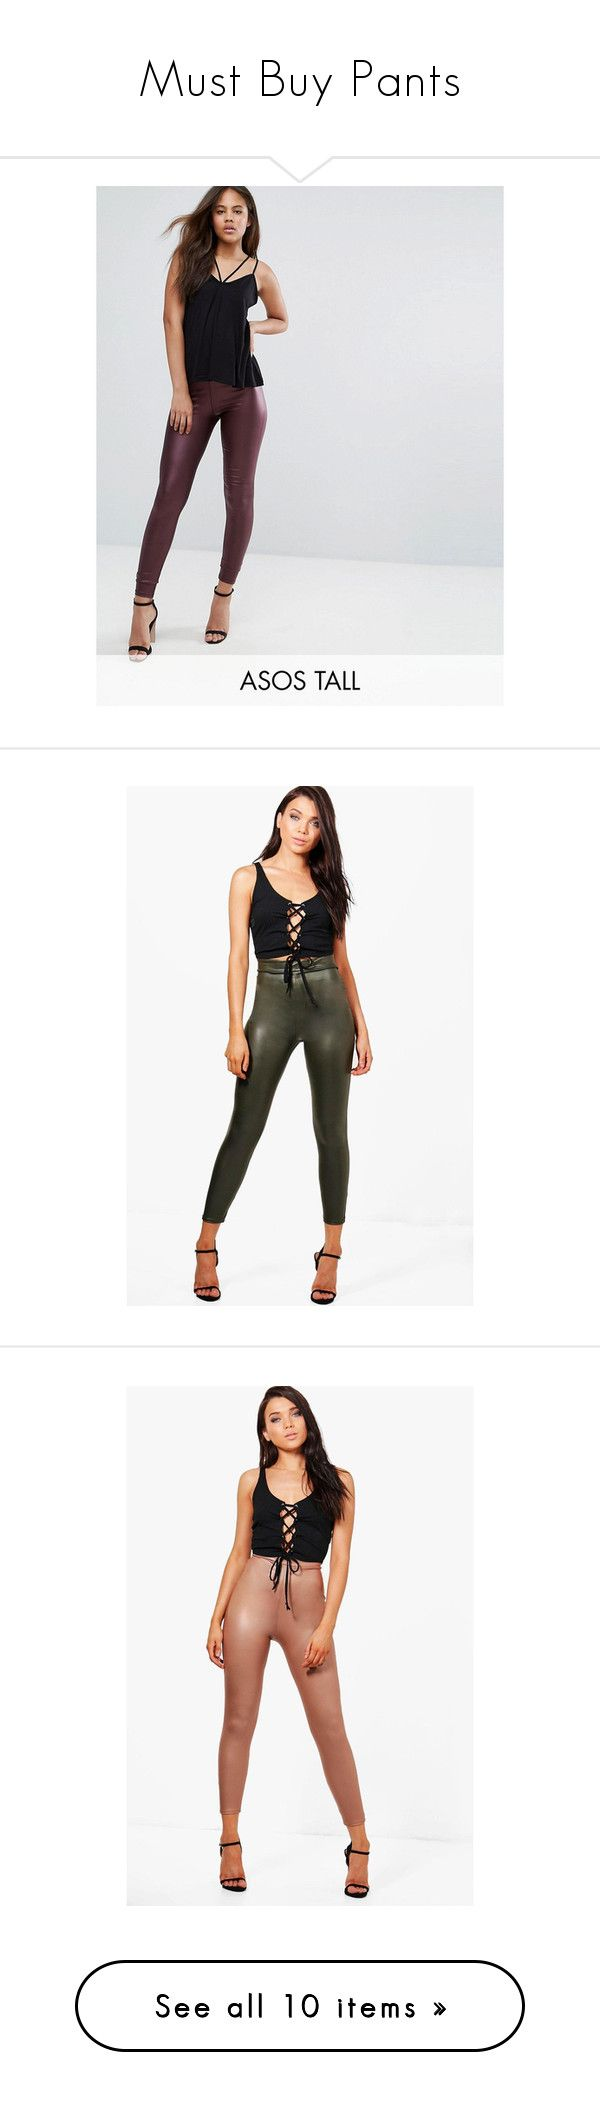 """""""Must Buy Pants"""" by madamshante17 ❤ liked on Polyvore featuring pants, leggings, red, mesh-panel leggings, high waisted faux leather leggings, high-waisted leggings, wide-waistband leggings, slimming leggings, petite leggings and petite trousers"""